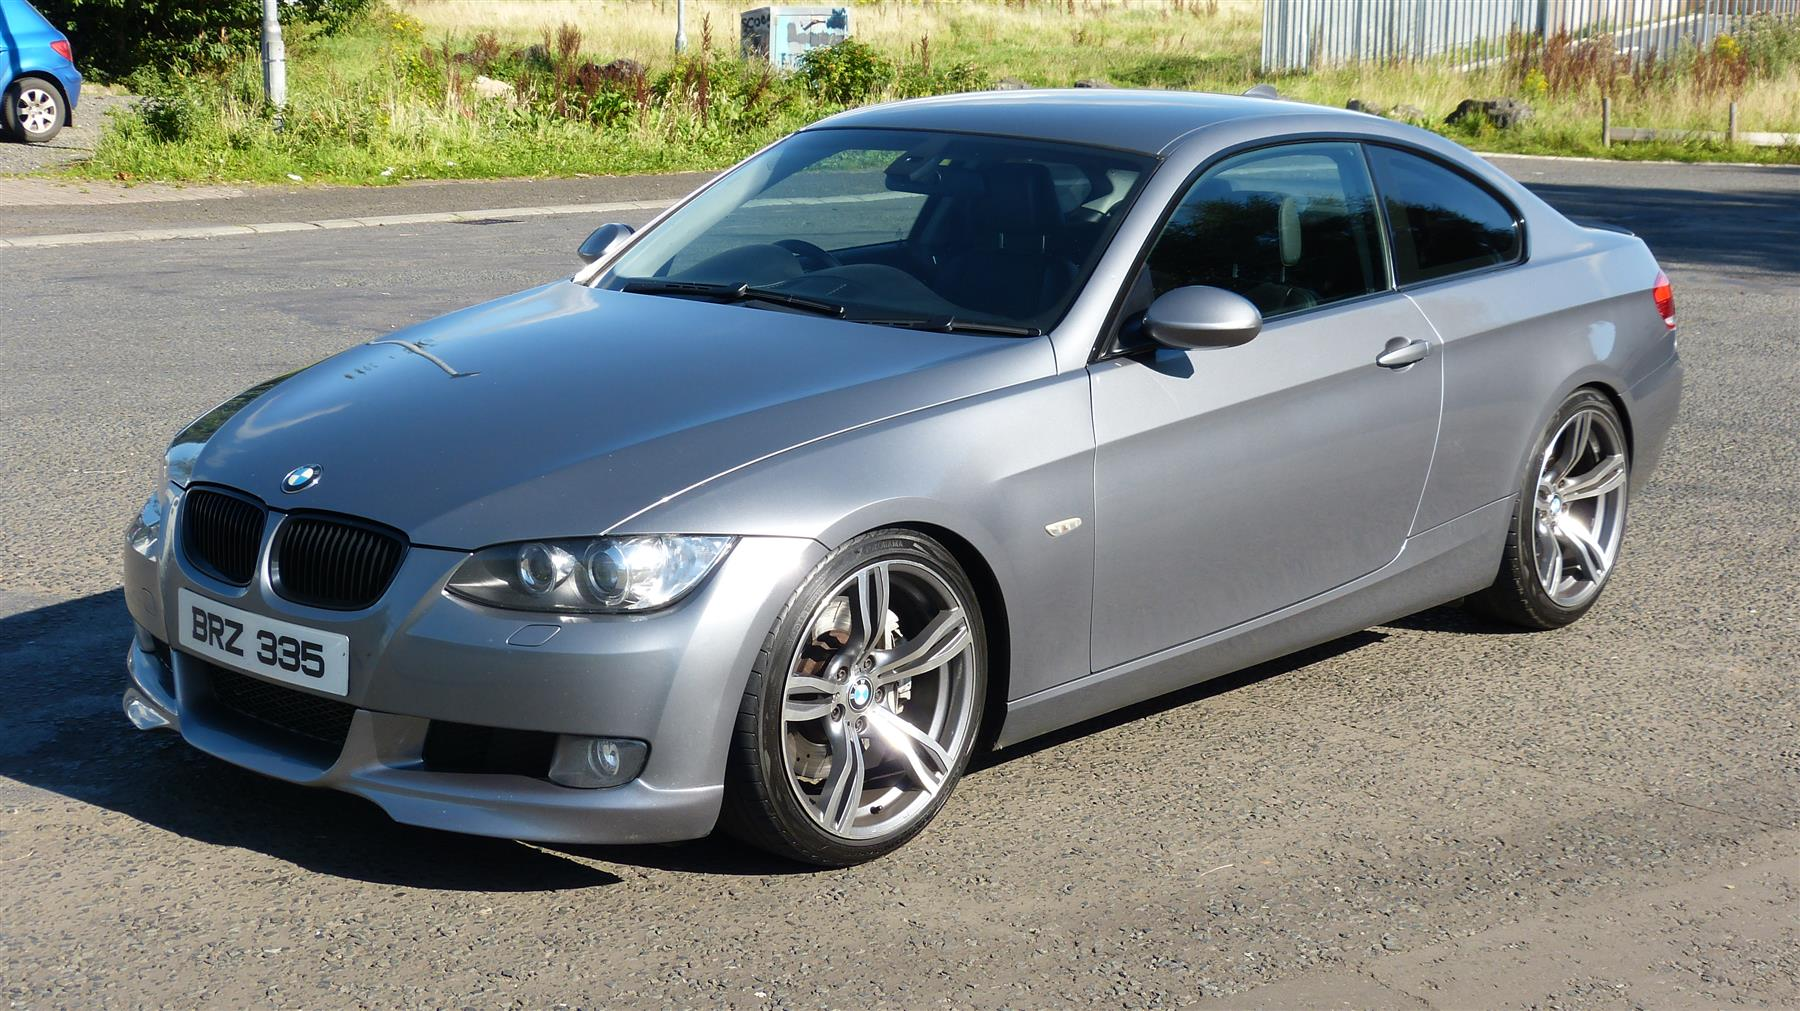 BMW 3 series 335d 2007 photo - 11